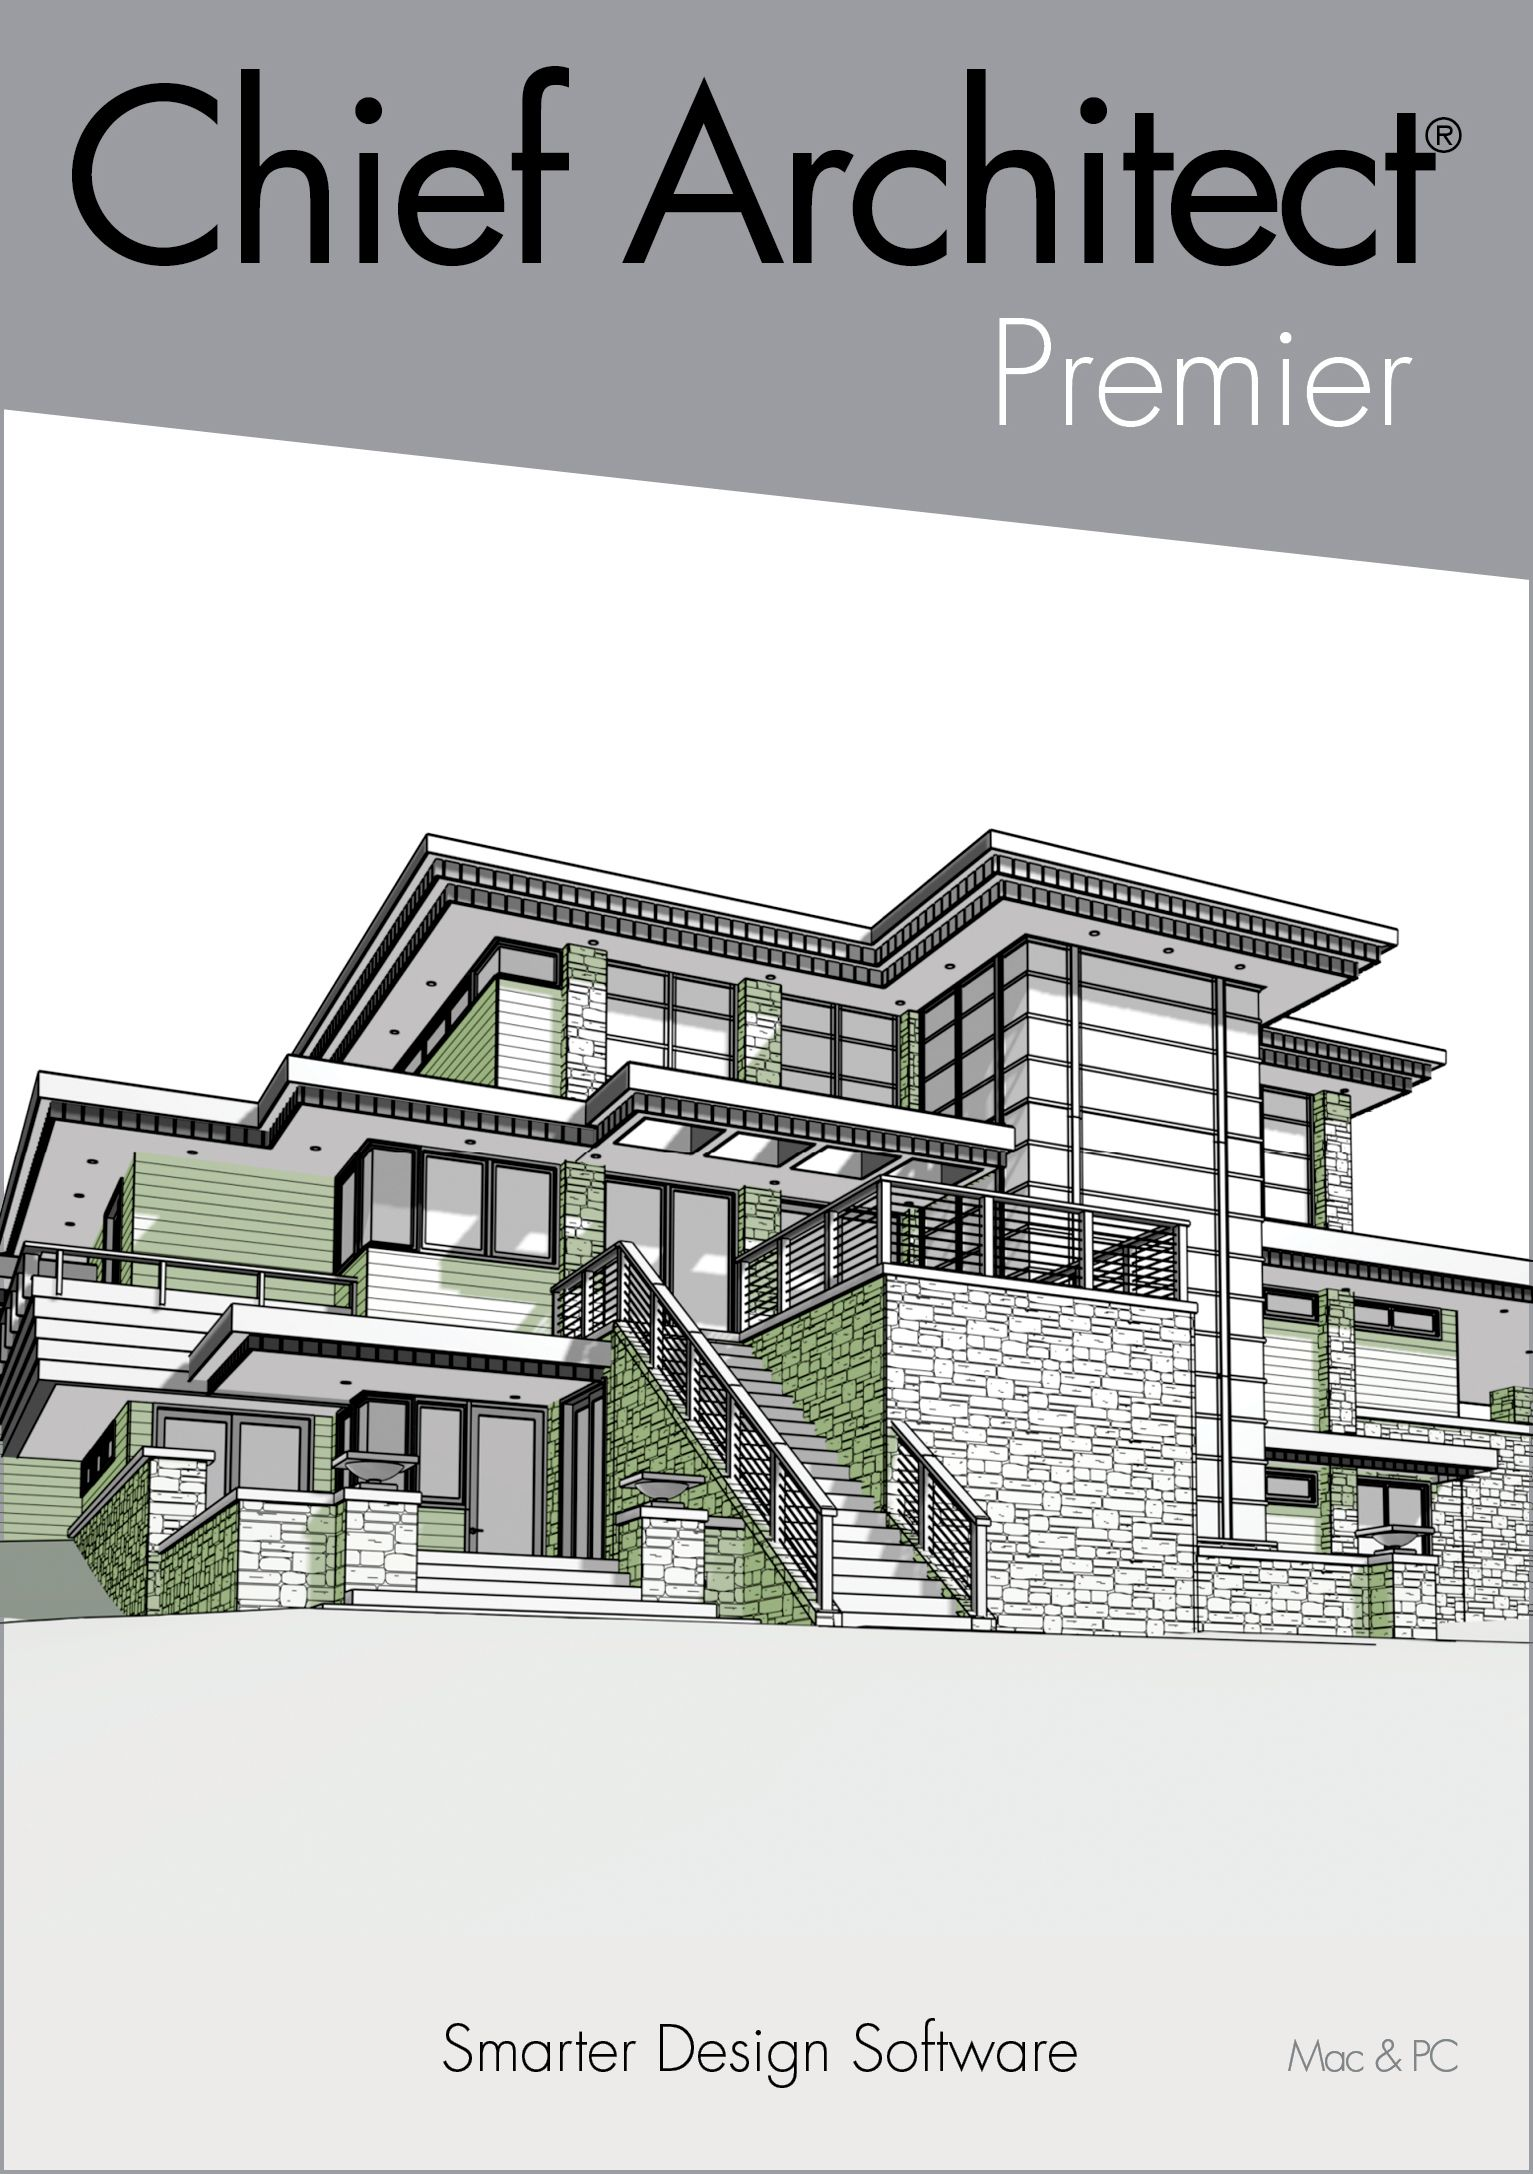 Chief Architect Software Home Design Software Free 3d Home Design Software Home Design Software